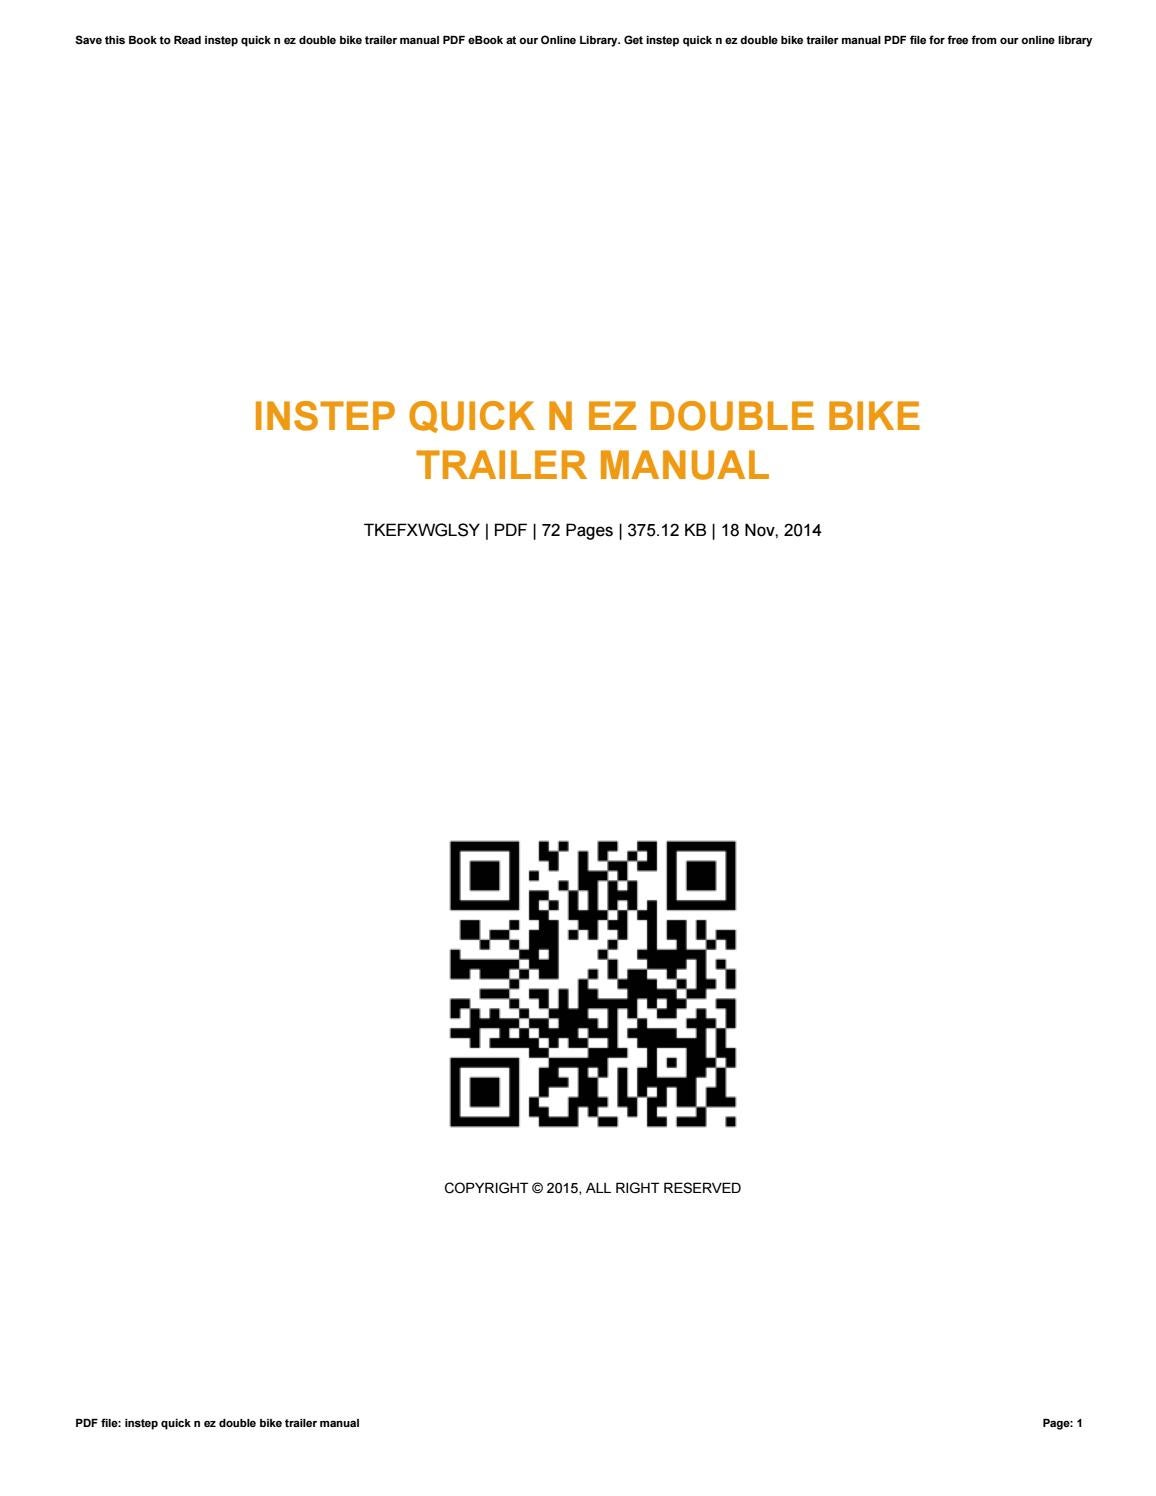 Instep quick n ez bicycle trailer manual